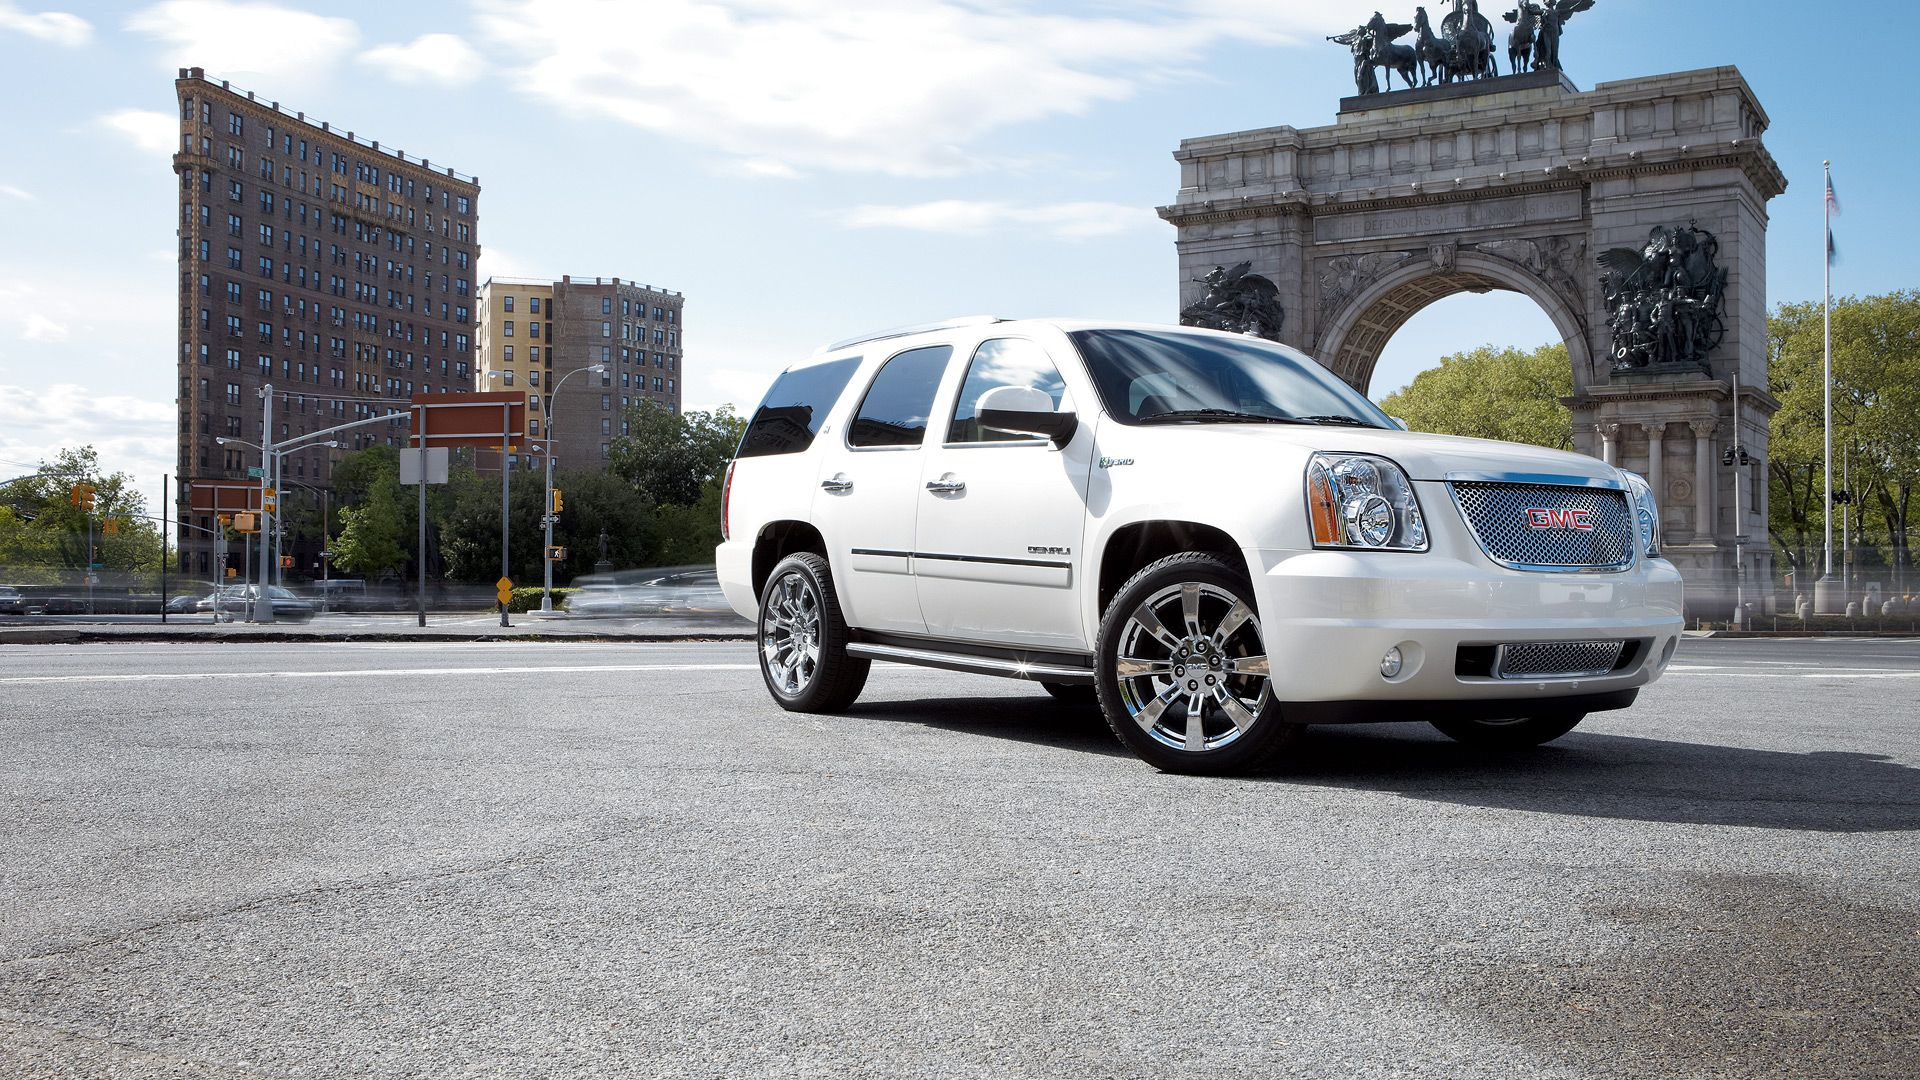 General Motors 2013 Gmc Yukon Denali Hybrid Gm Com Gmc Yukon